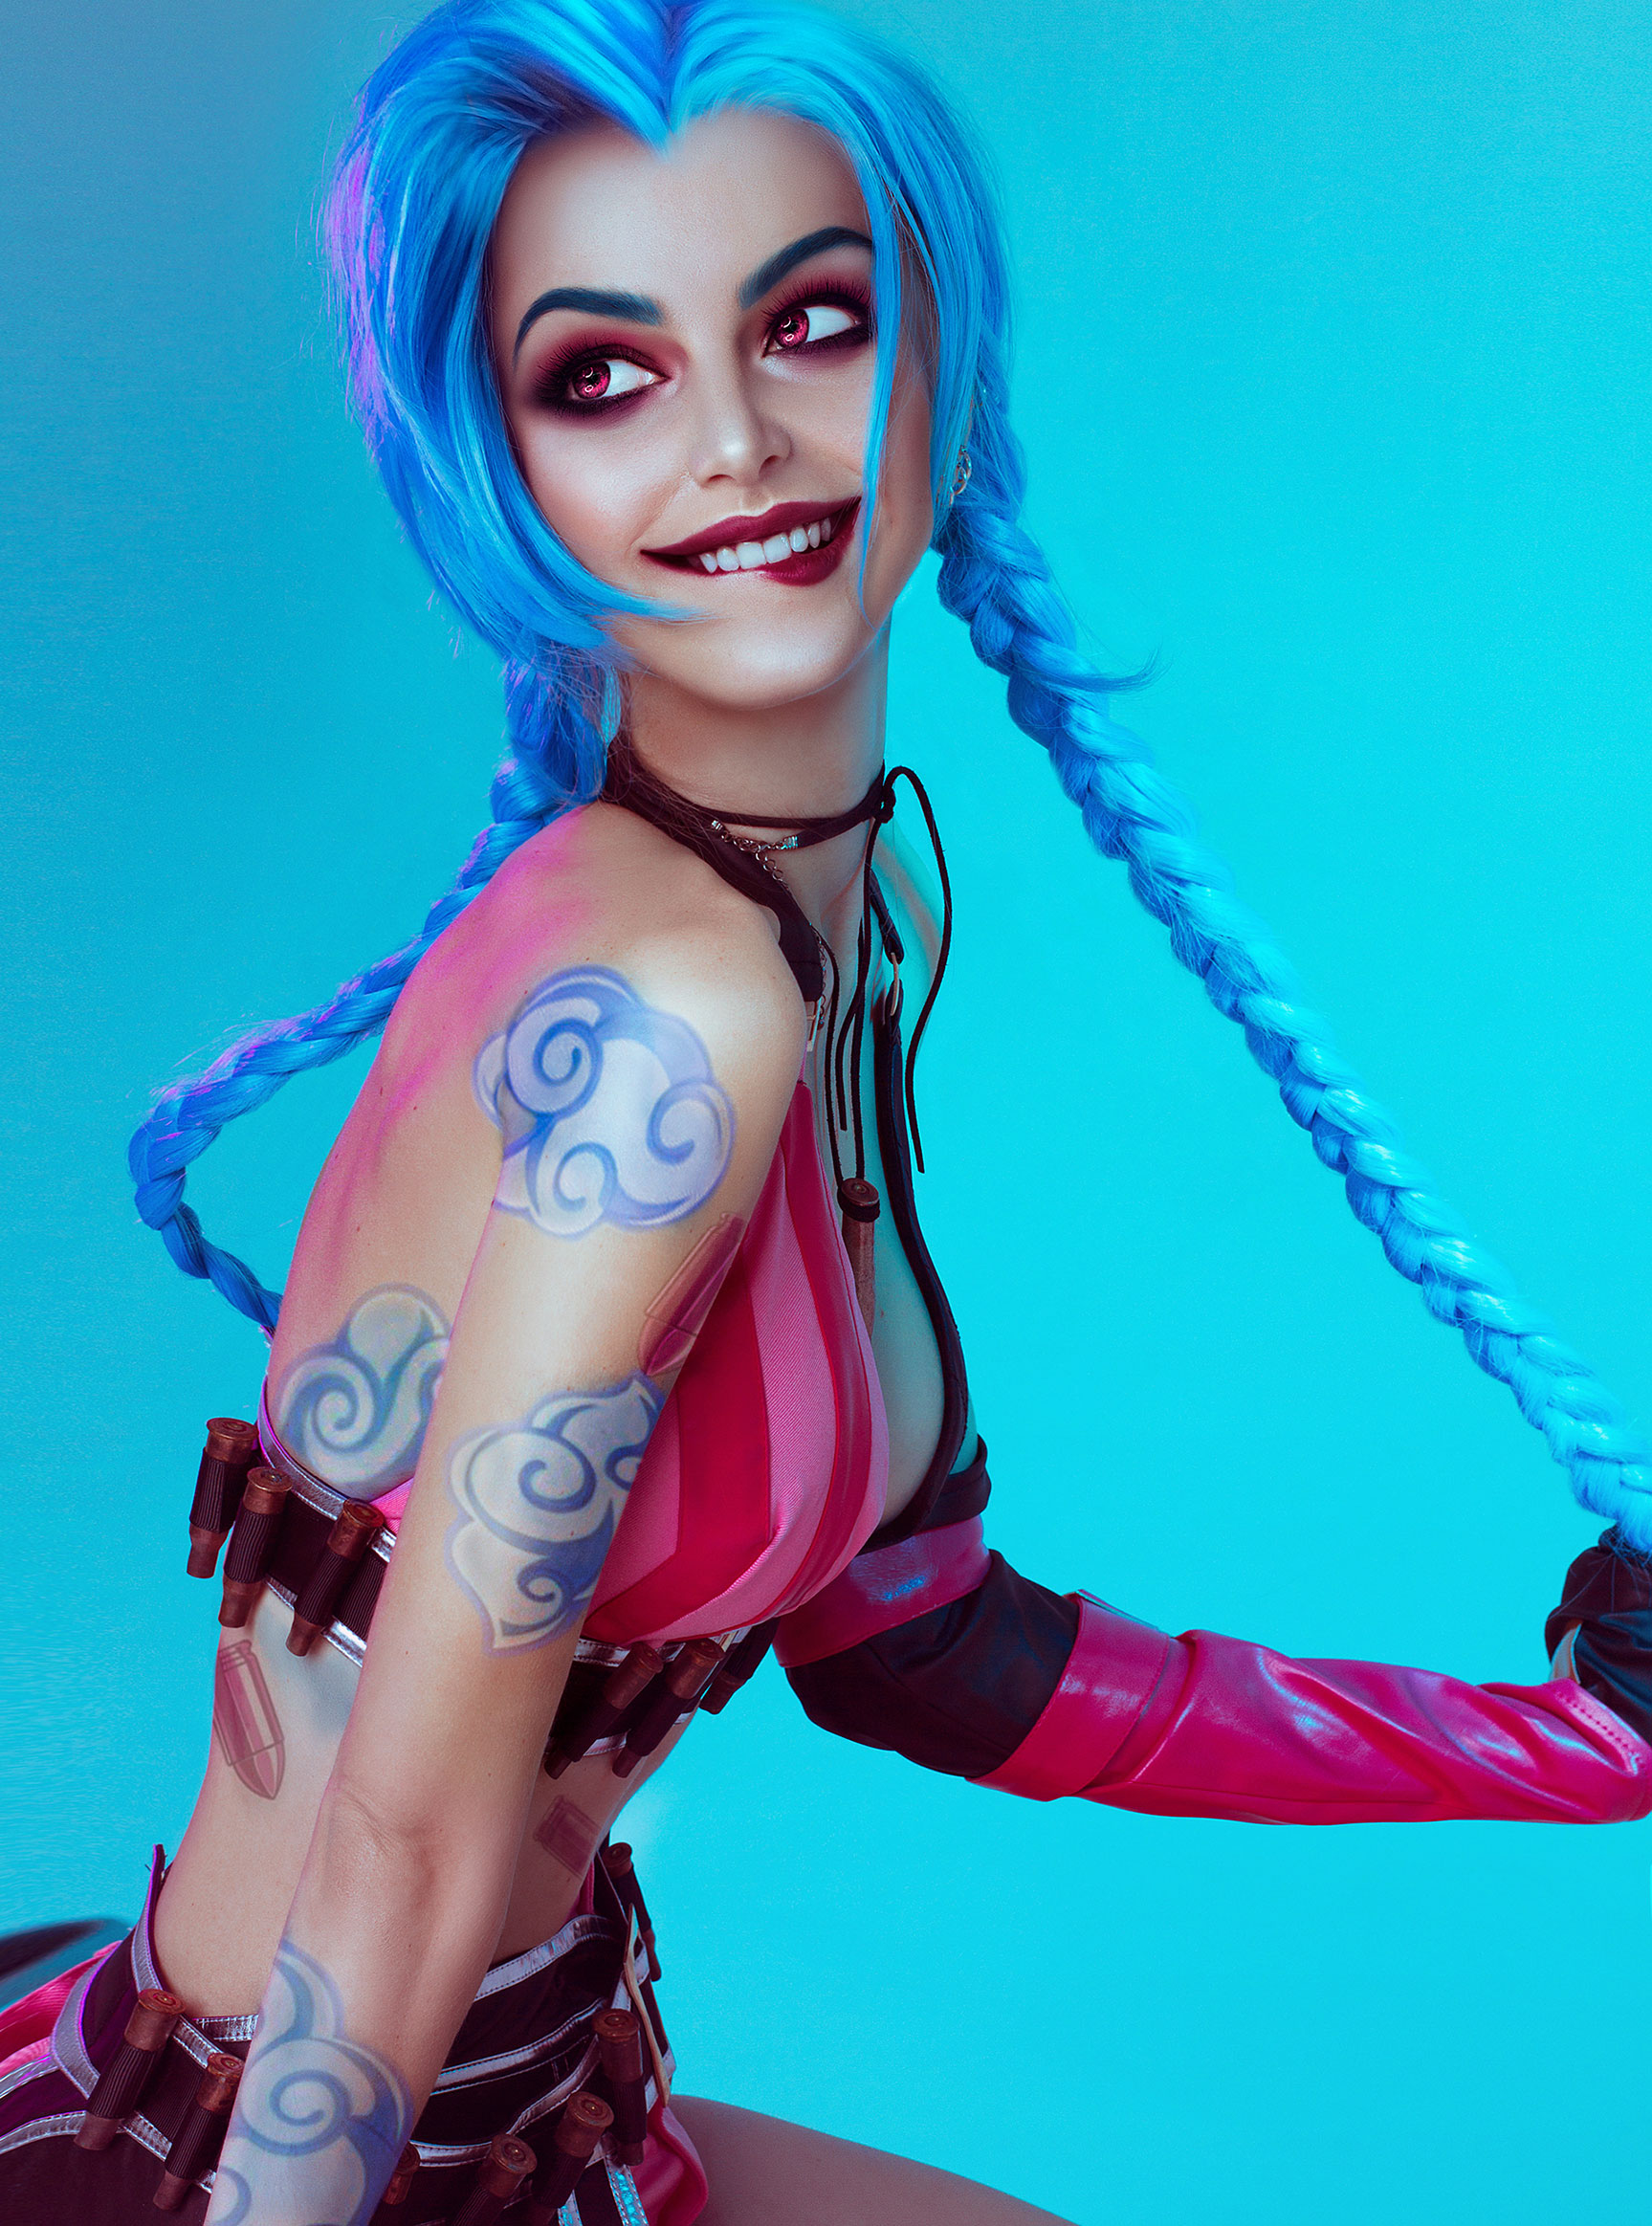 Cosplay / Katie Kosova / Катя Косова в роли Jinx из игры League of Legends / фотограф Tim Rise